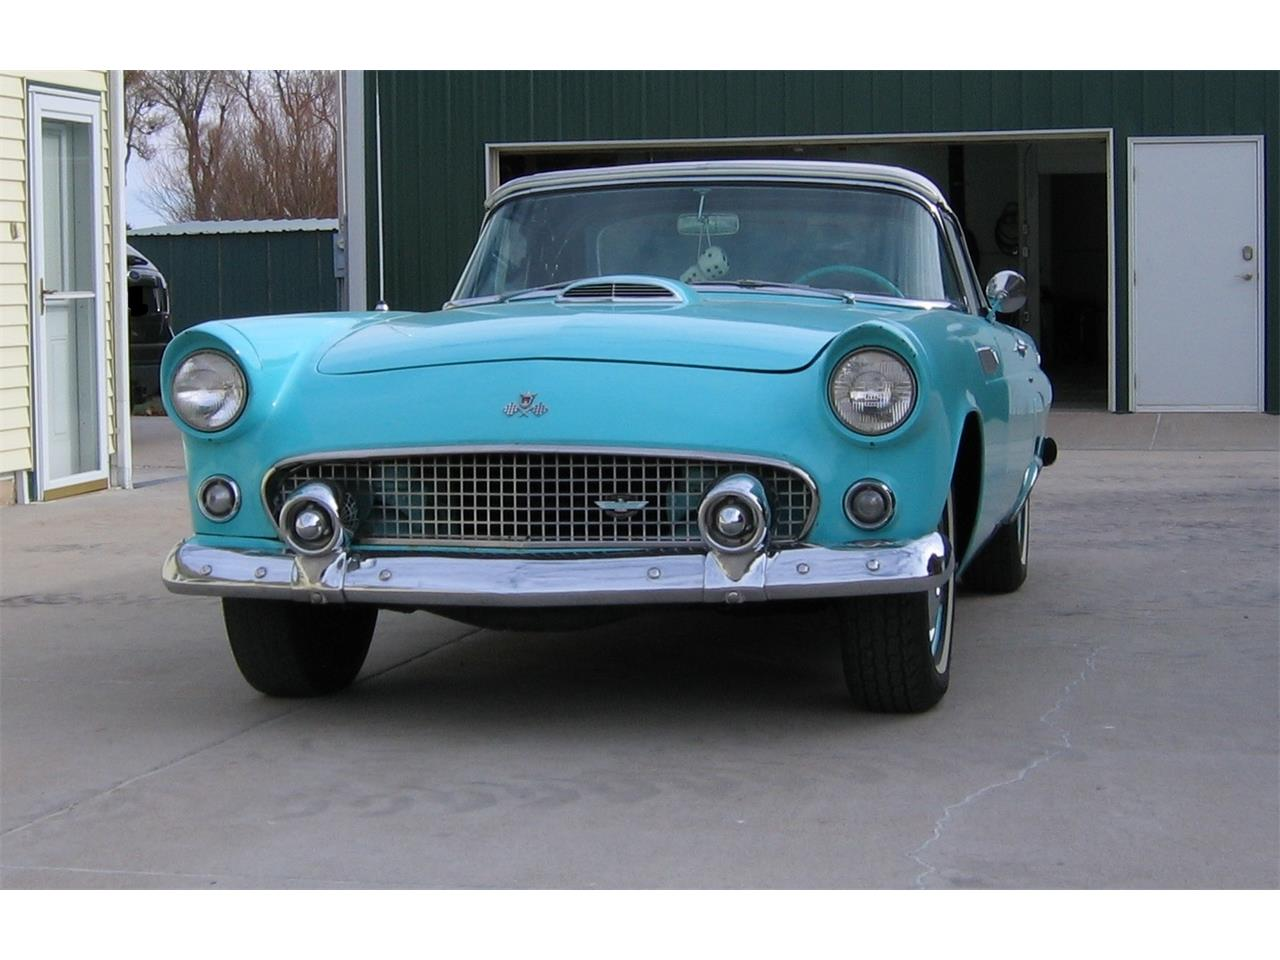 Large Picture of Classic '55 Ford Thunderbird - $26,400.00 Offered by a Private Seller - JUSS